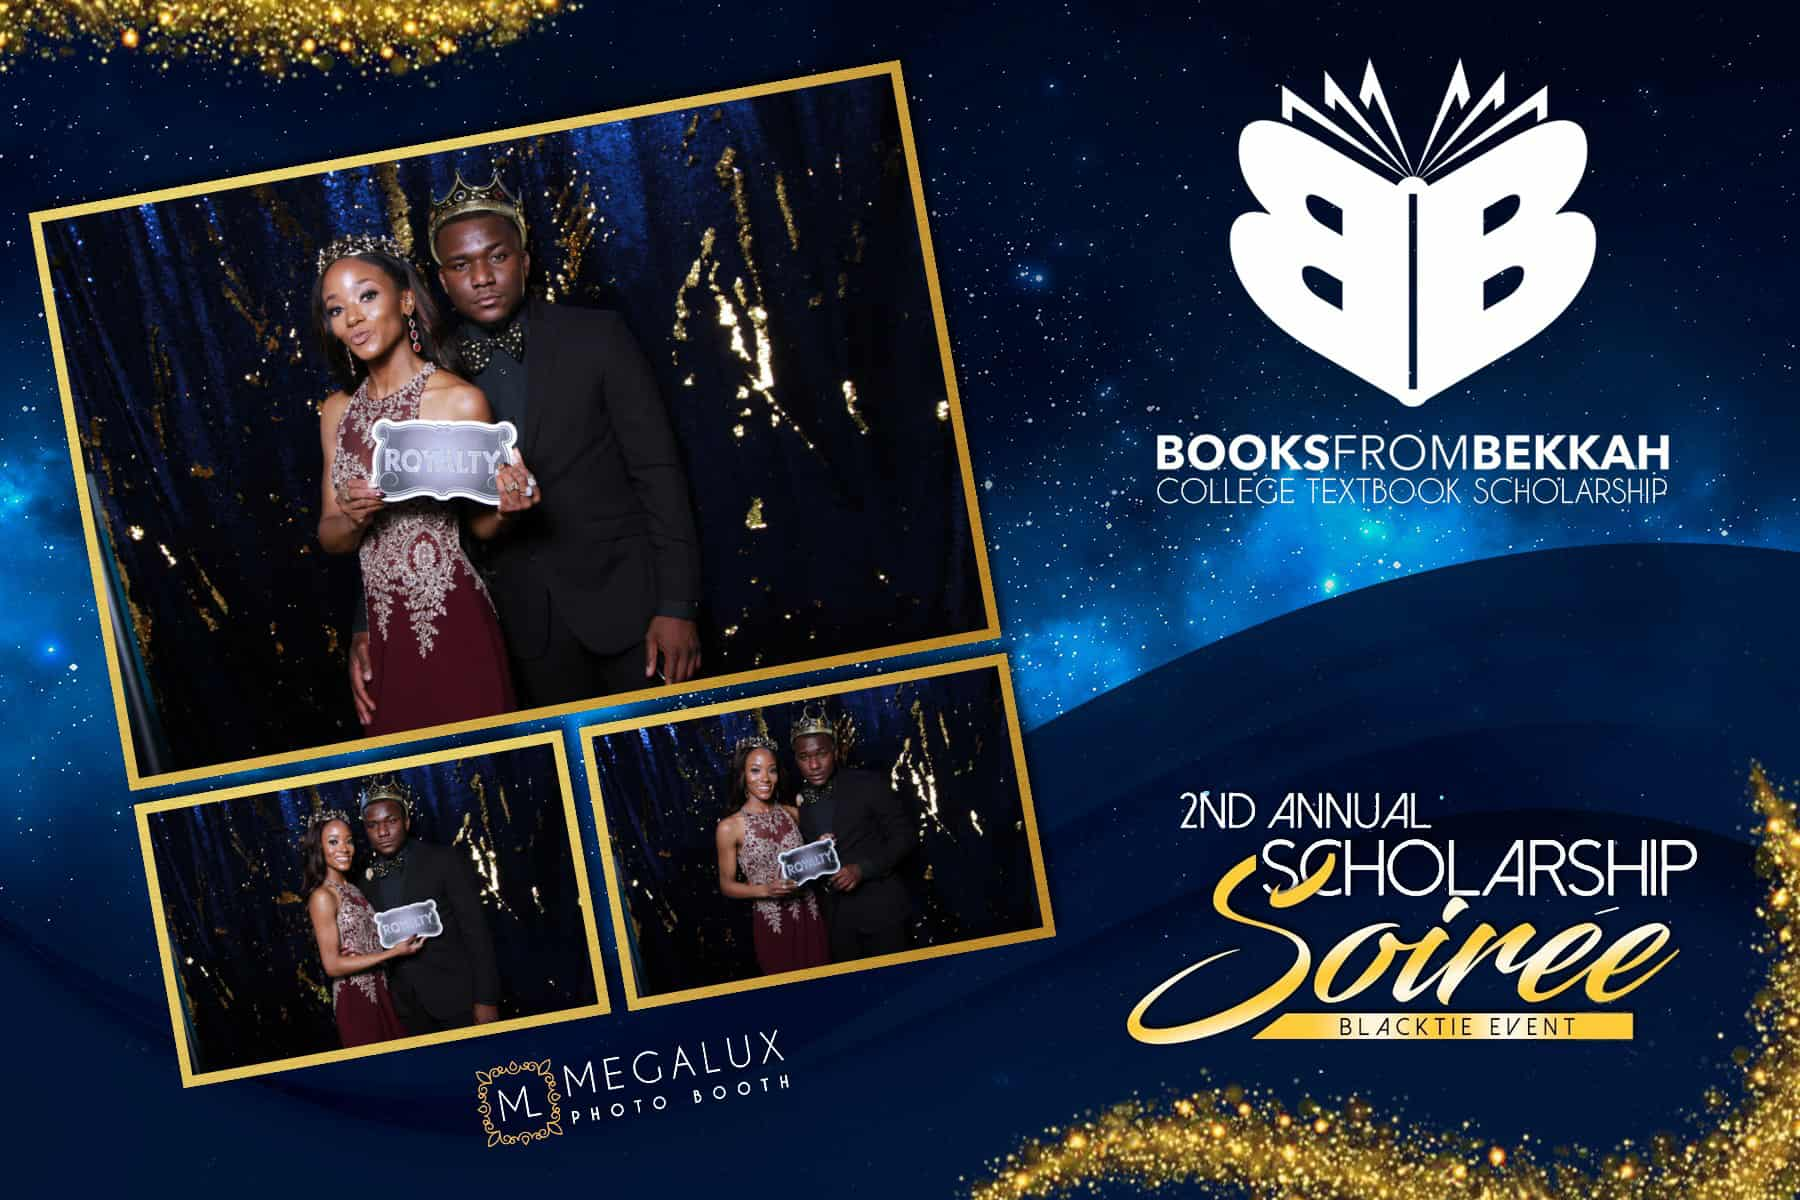 Megalux Photo Booth Corporate Party